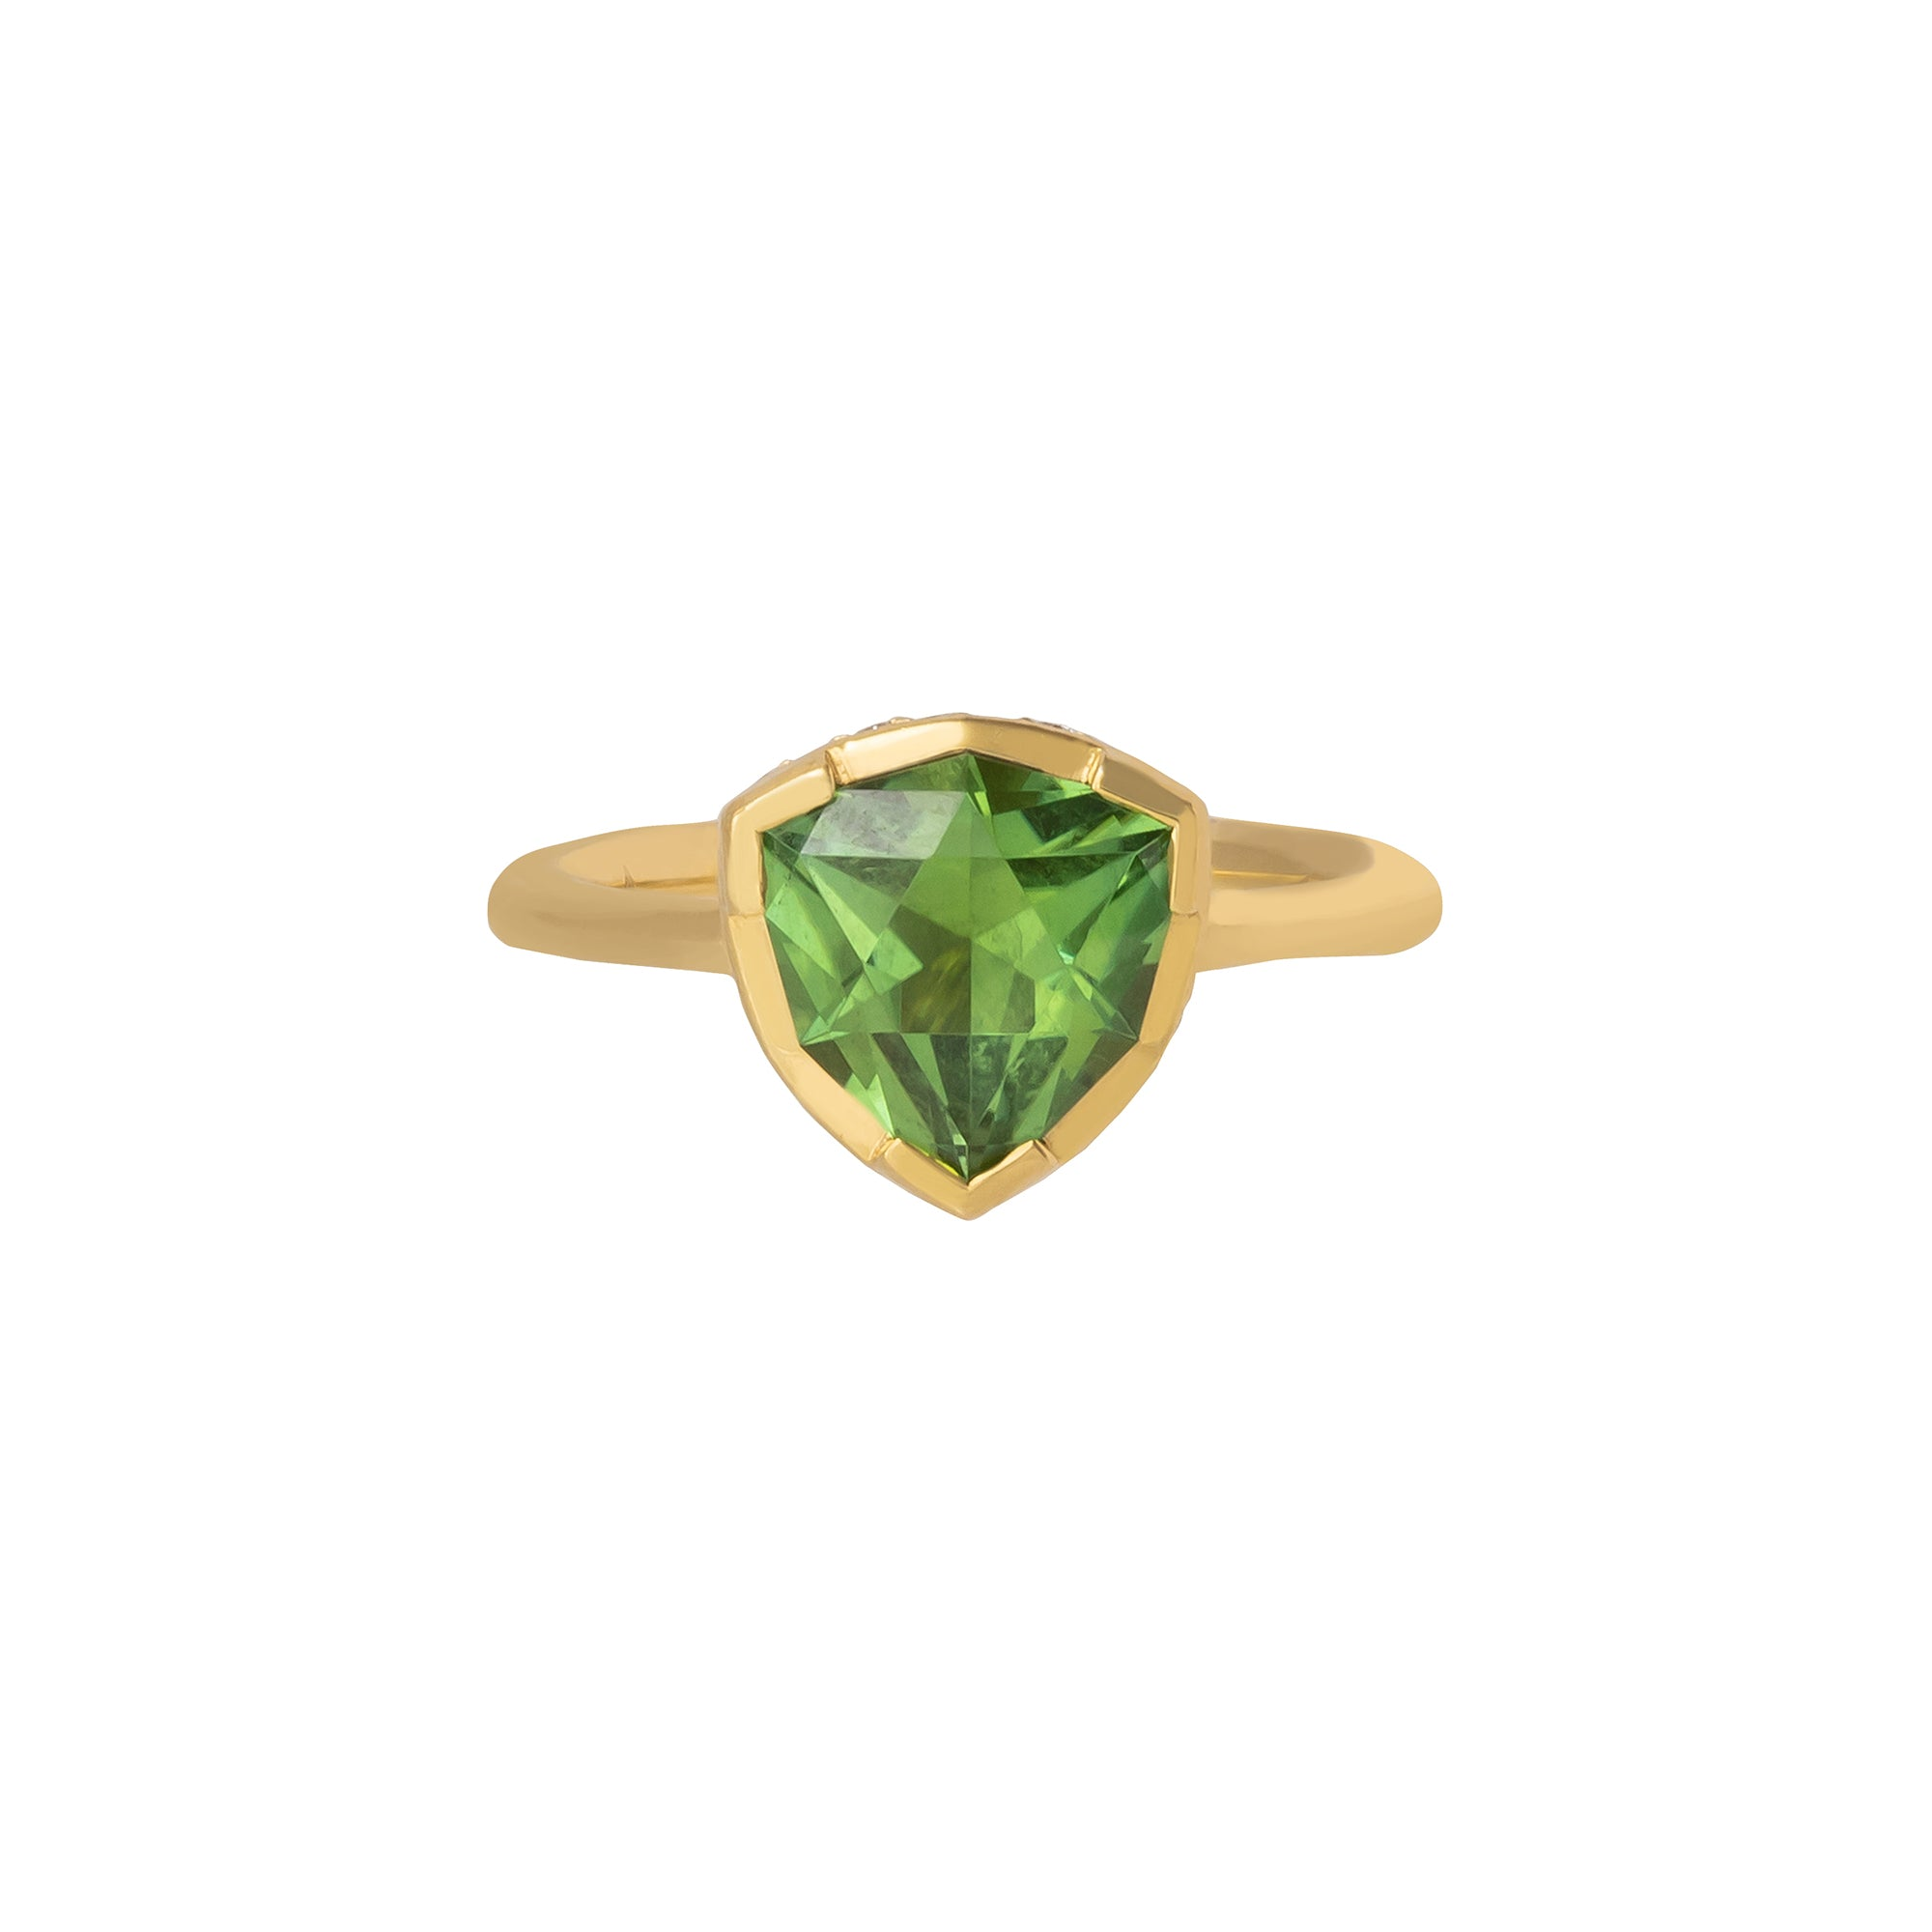 Green Tourmaline Color's Crown Gemstone Ring - ANDY LIF Jewelry - Rings | Broken English Jewelry